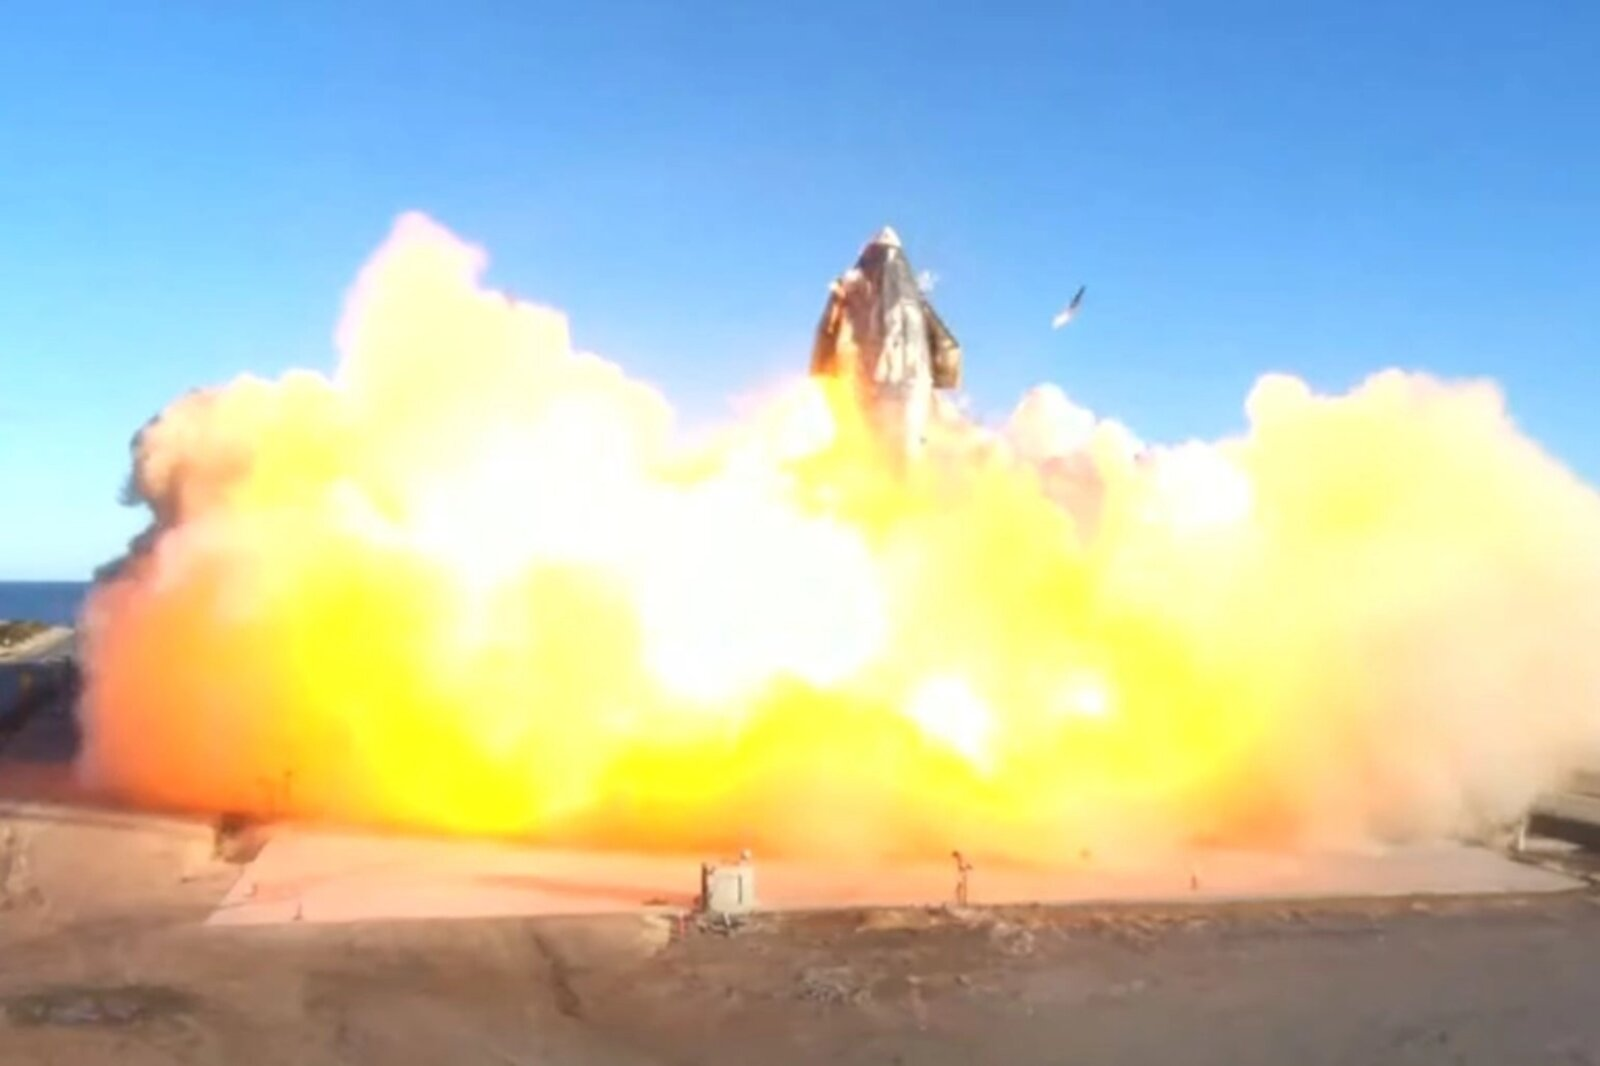 SpaceX tried for a successful Starship height test today, only for the launch to go up in flames – literally. See the failed launch for yourself.